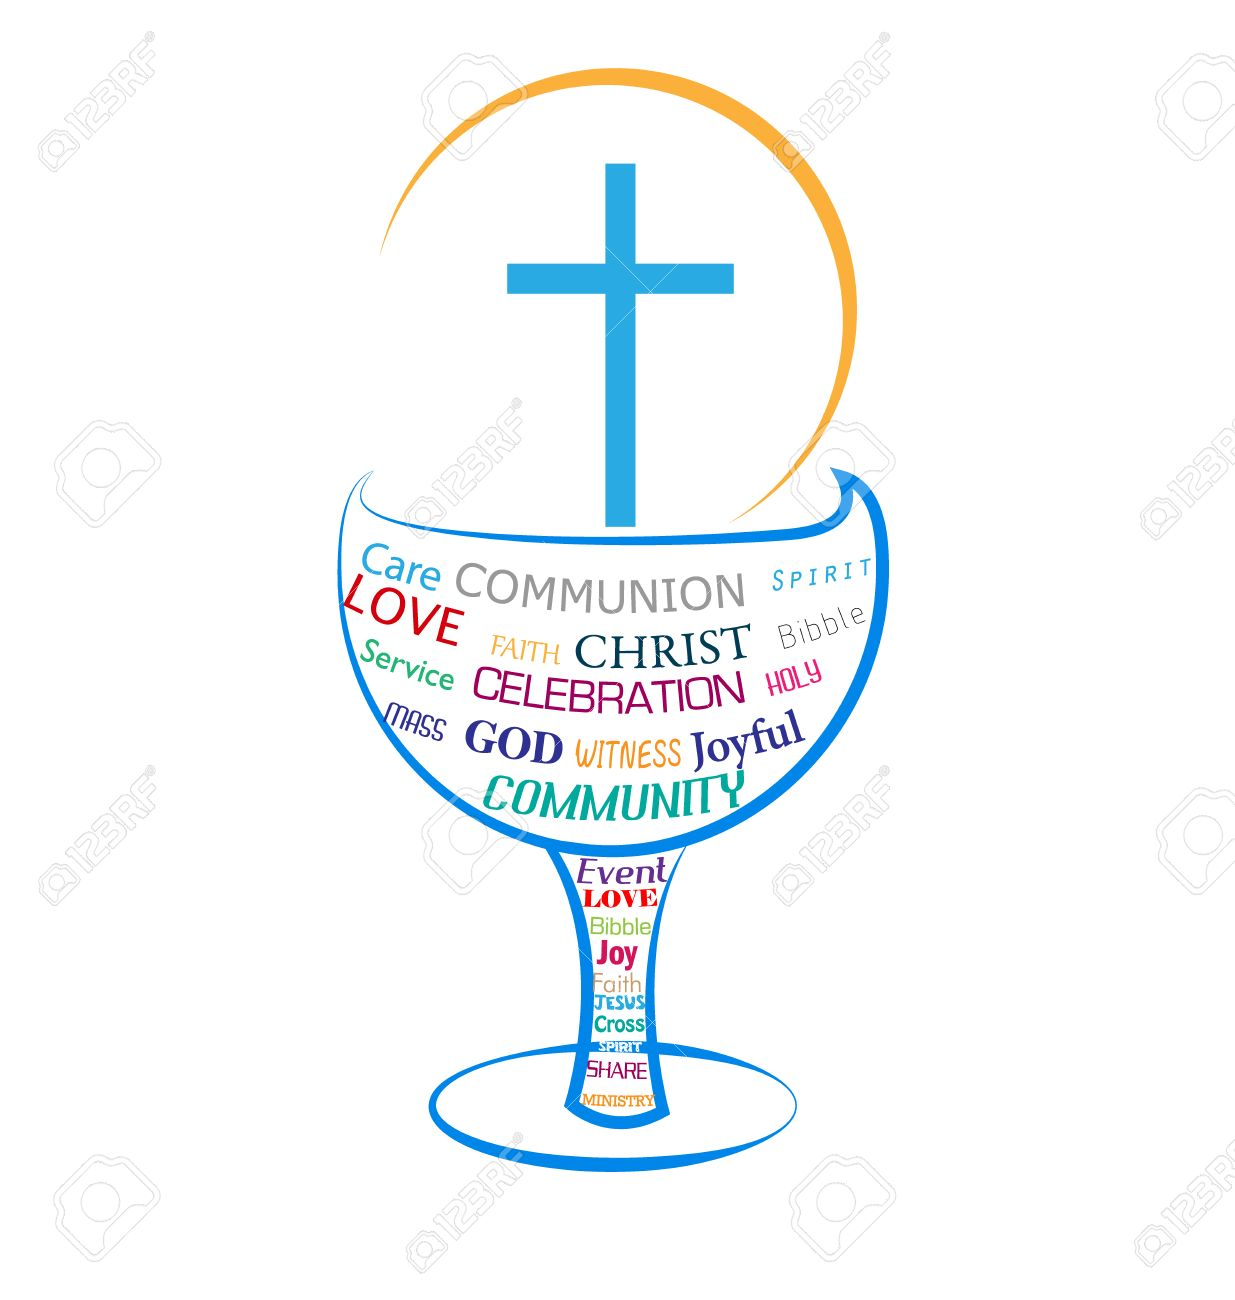 Eucharist Holy Communion Symbol Royalty Free Cliparts Vectors And